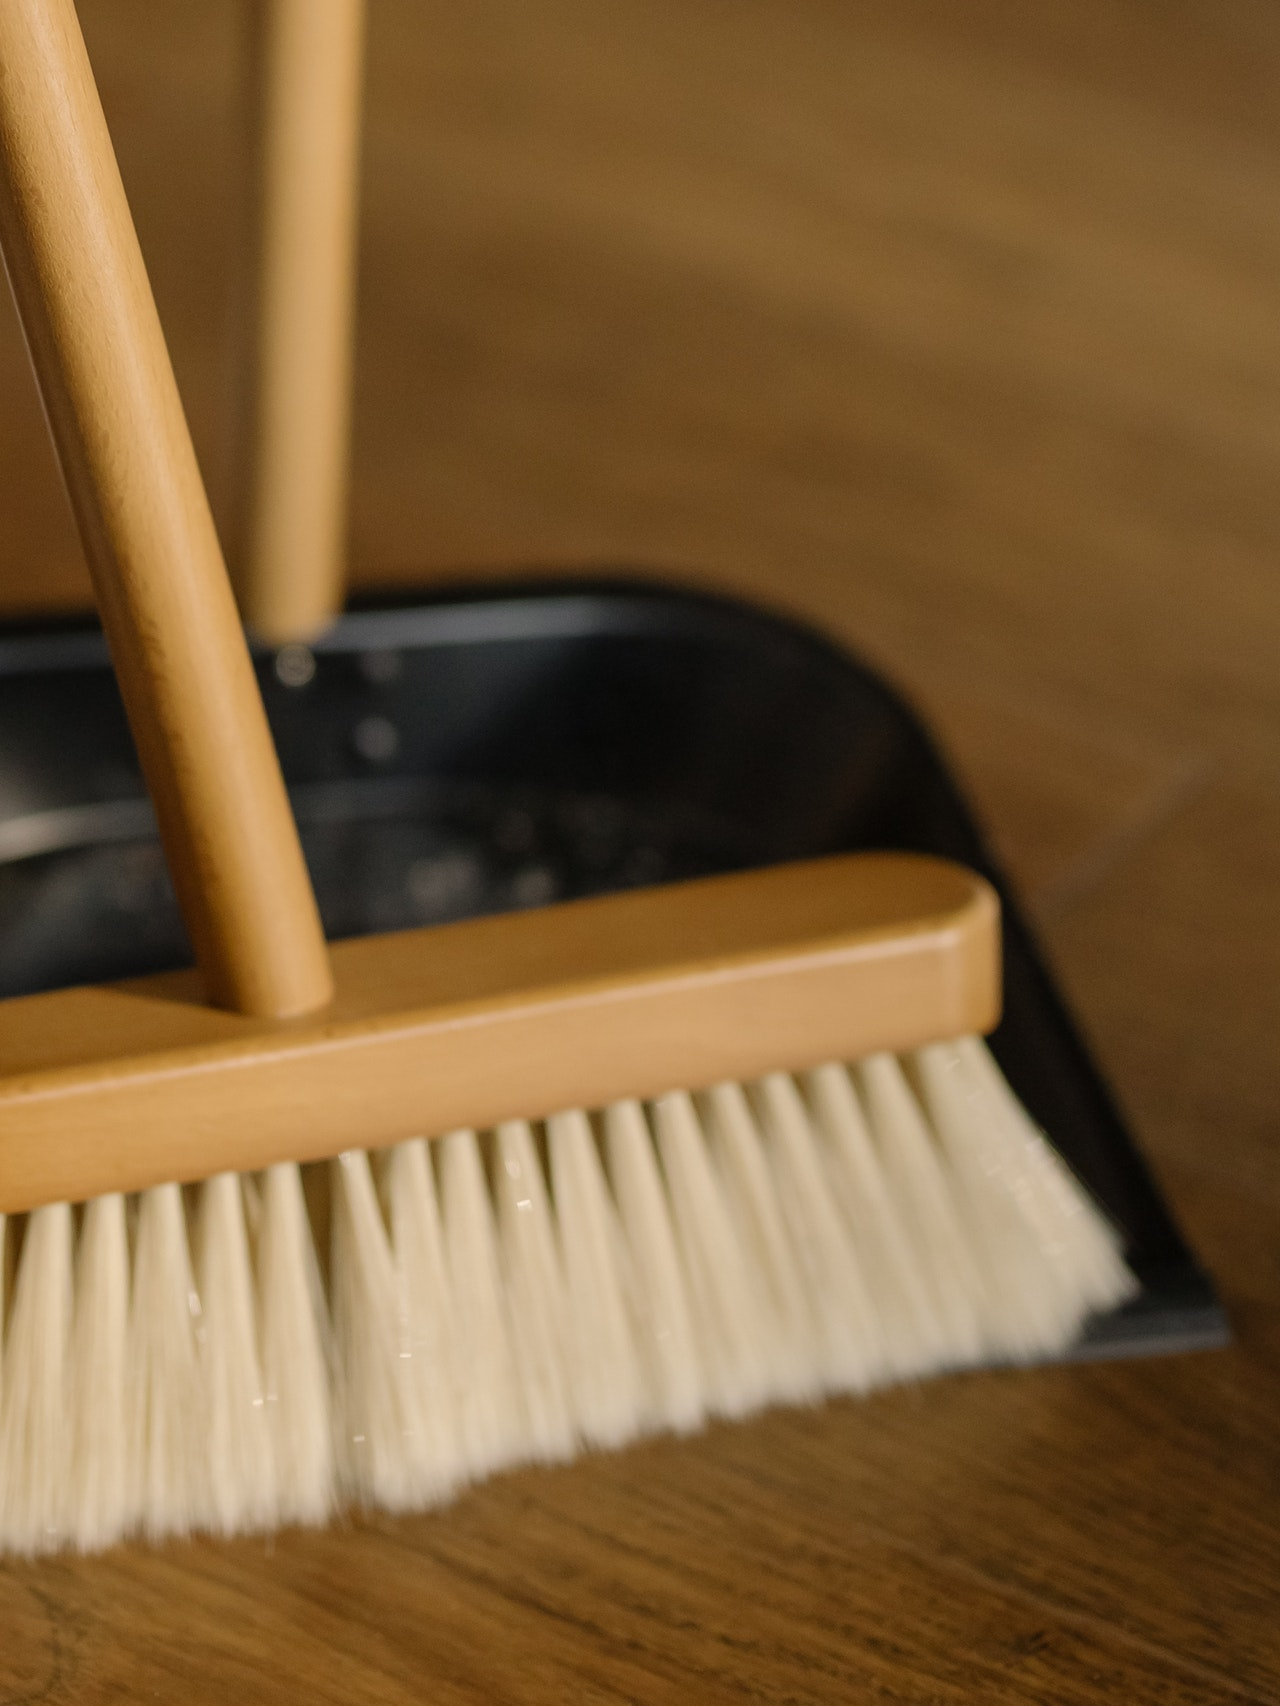 brown-wooden-brush-on-black-plastic-container-4108714